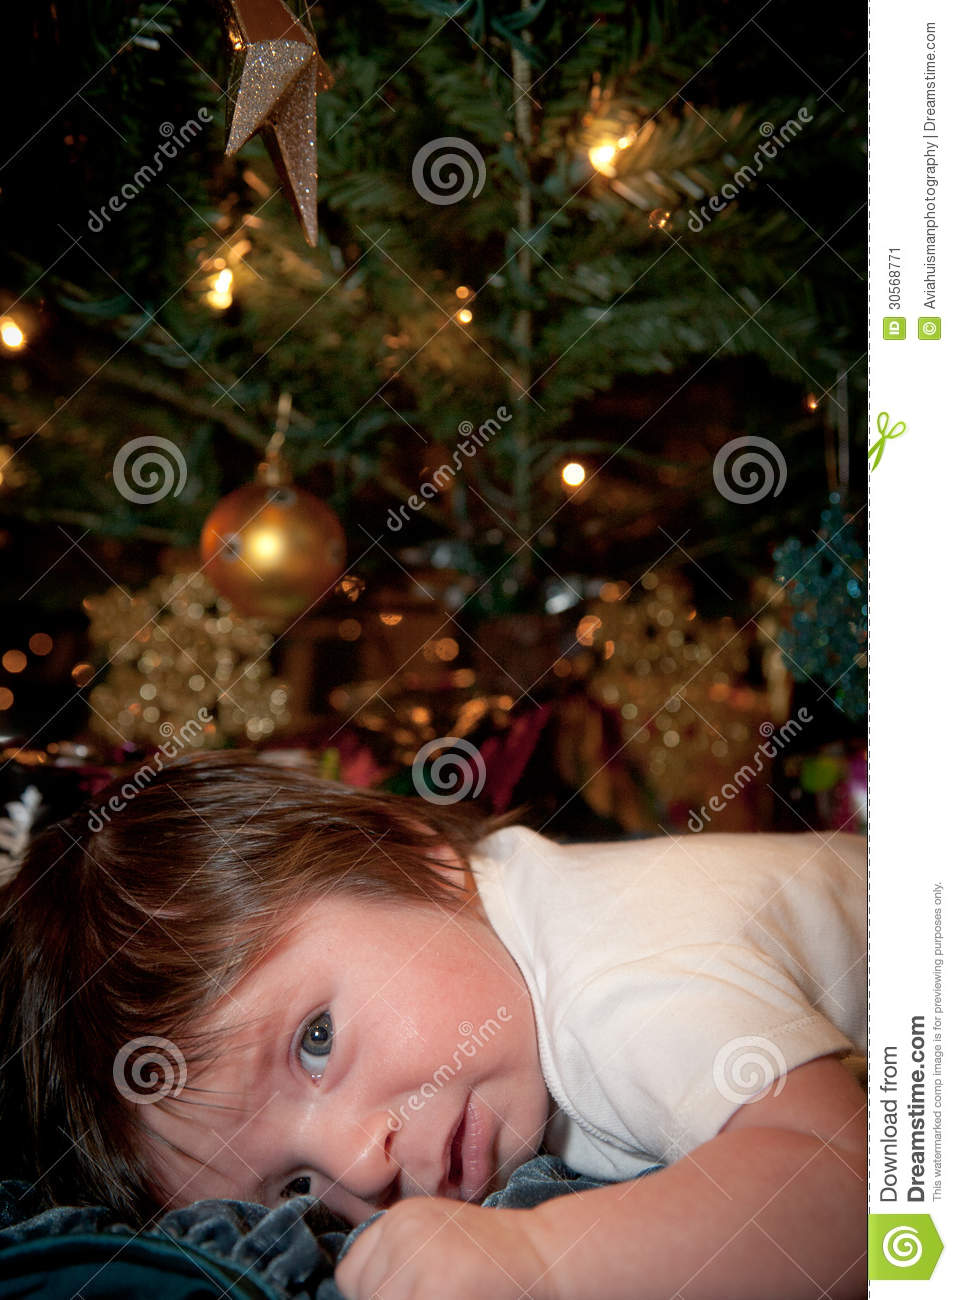 Baby S Holiday Stress Stock Image Image 30568771